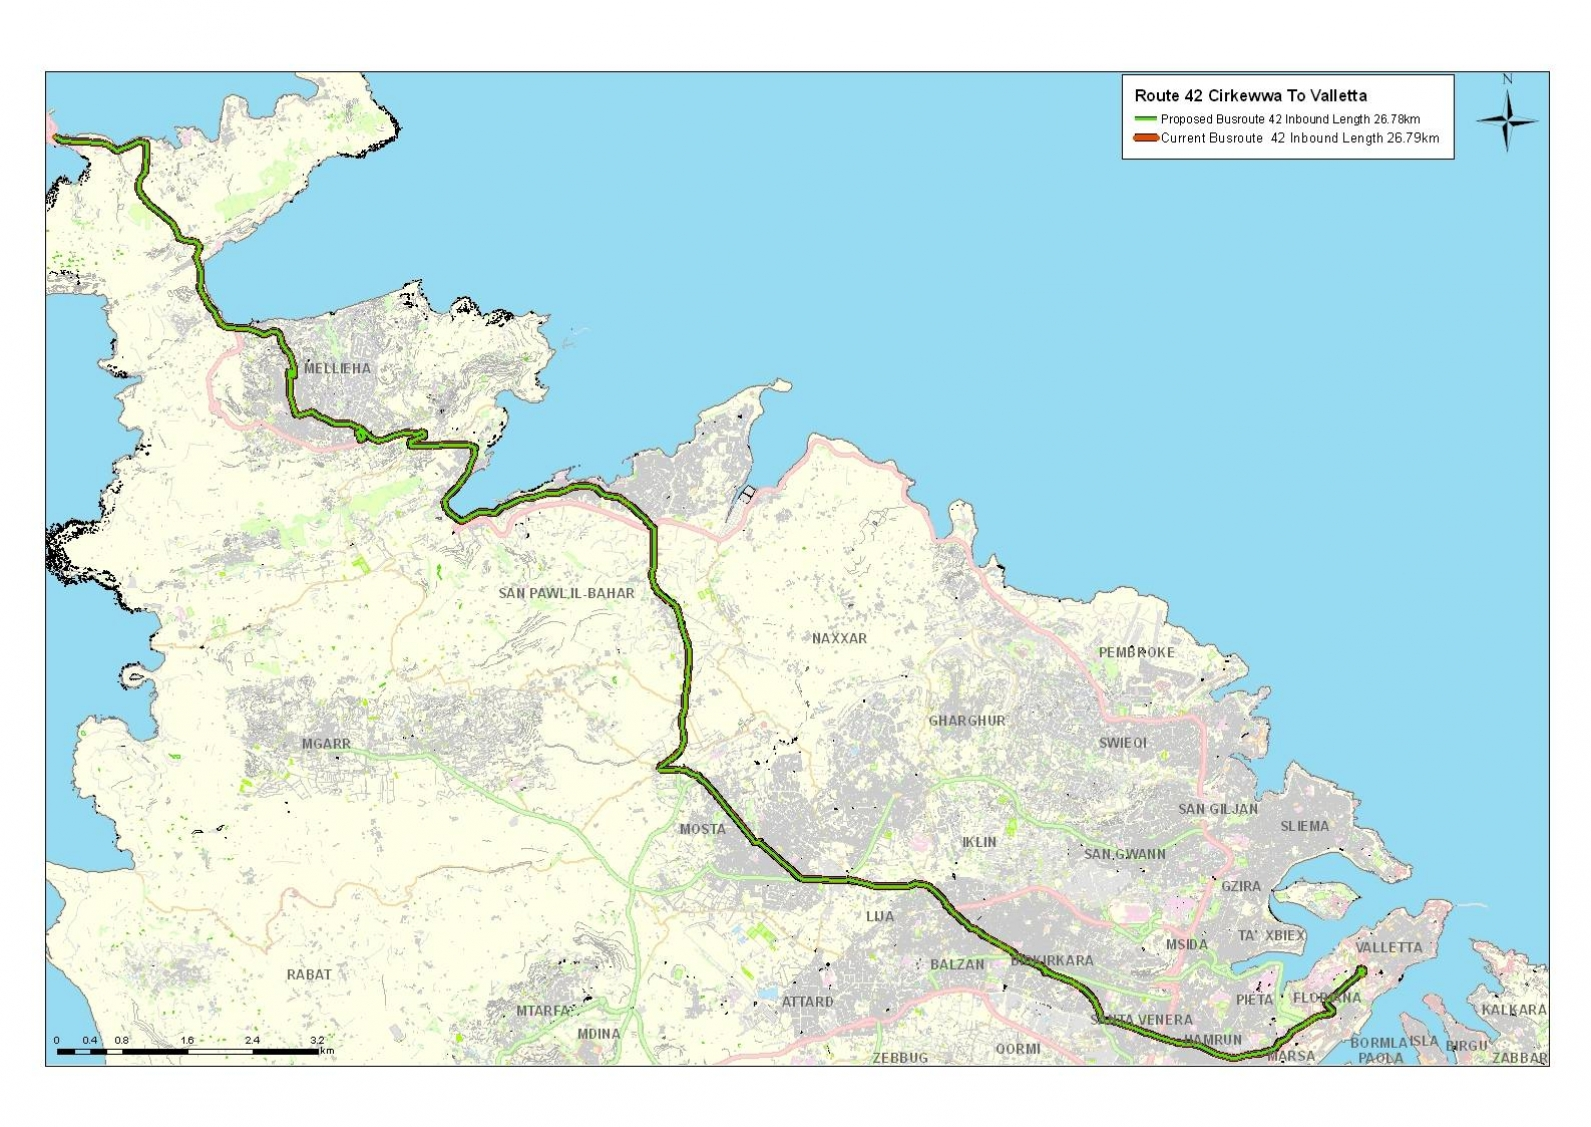 Land-current-network-routes-and-schedules-Cirkewwa-mellieha-sliema-5